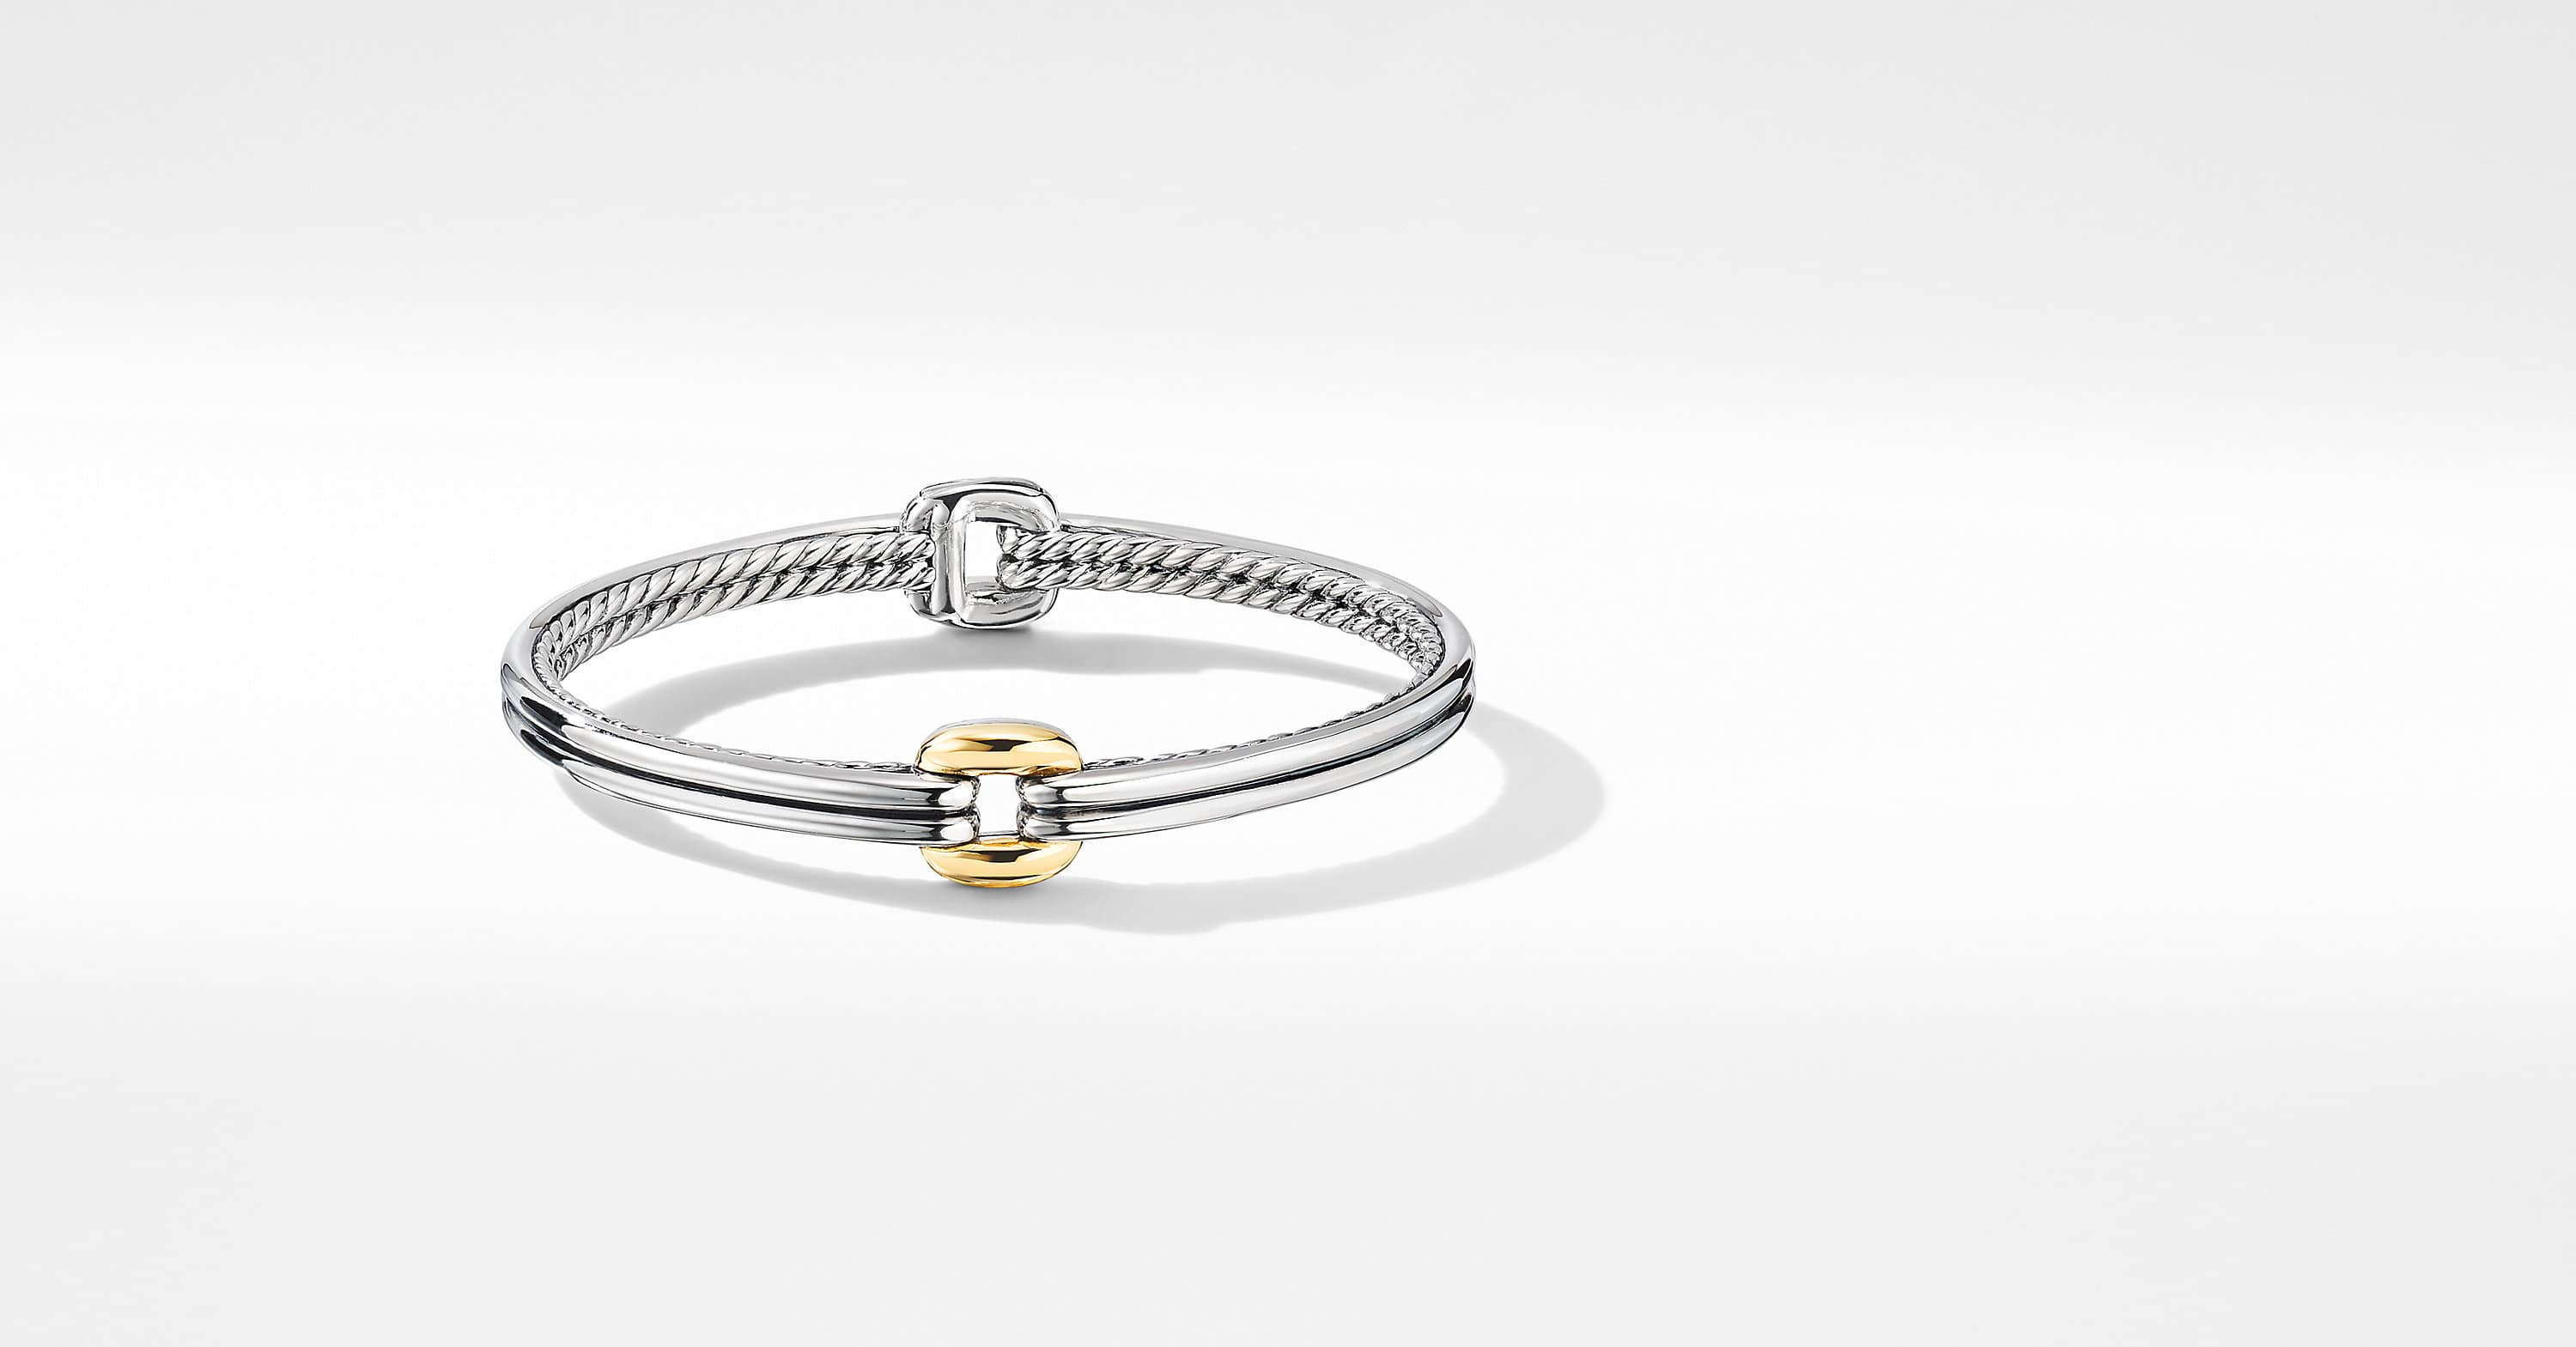 Thoroughbred Center Link Bracelet with 18K Yellow Gold